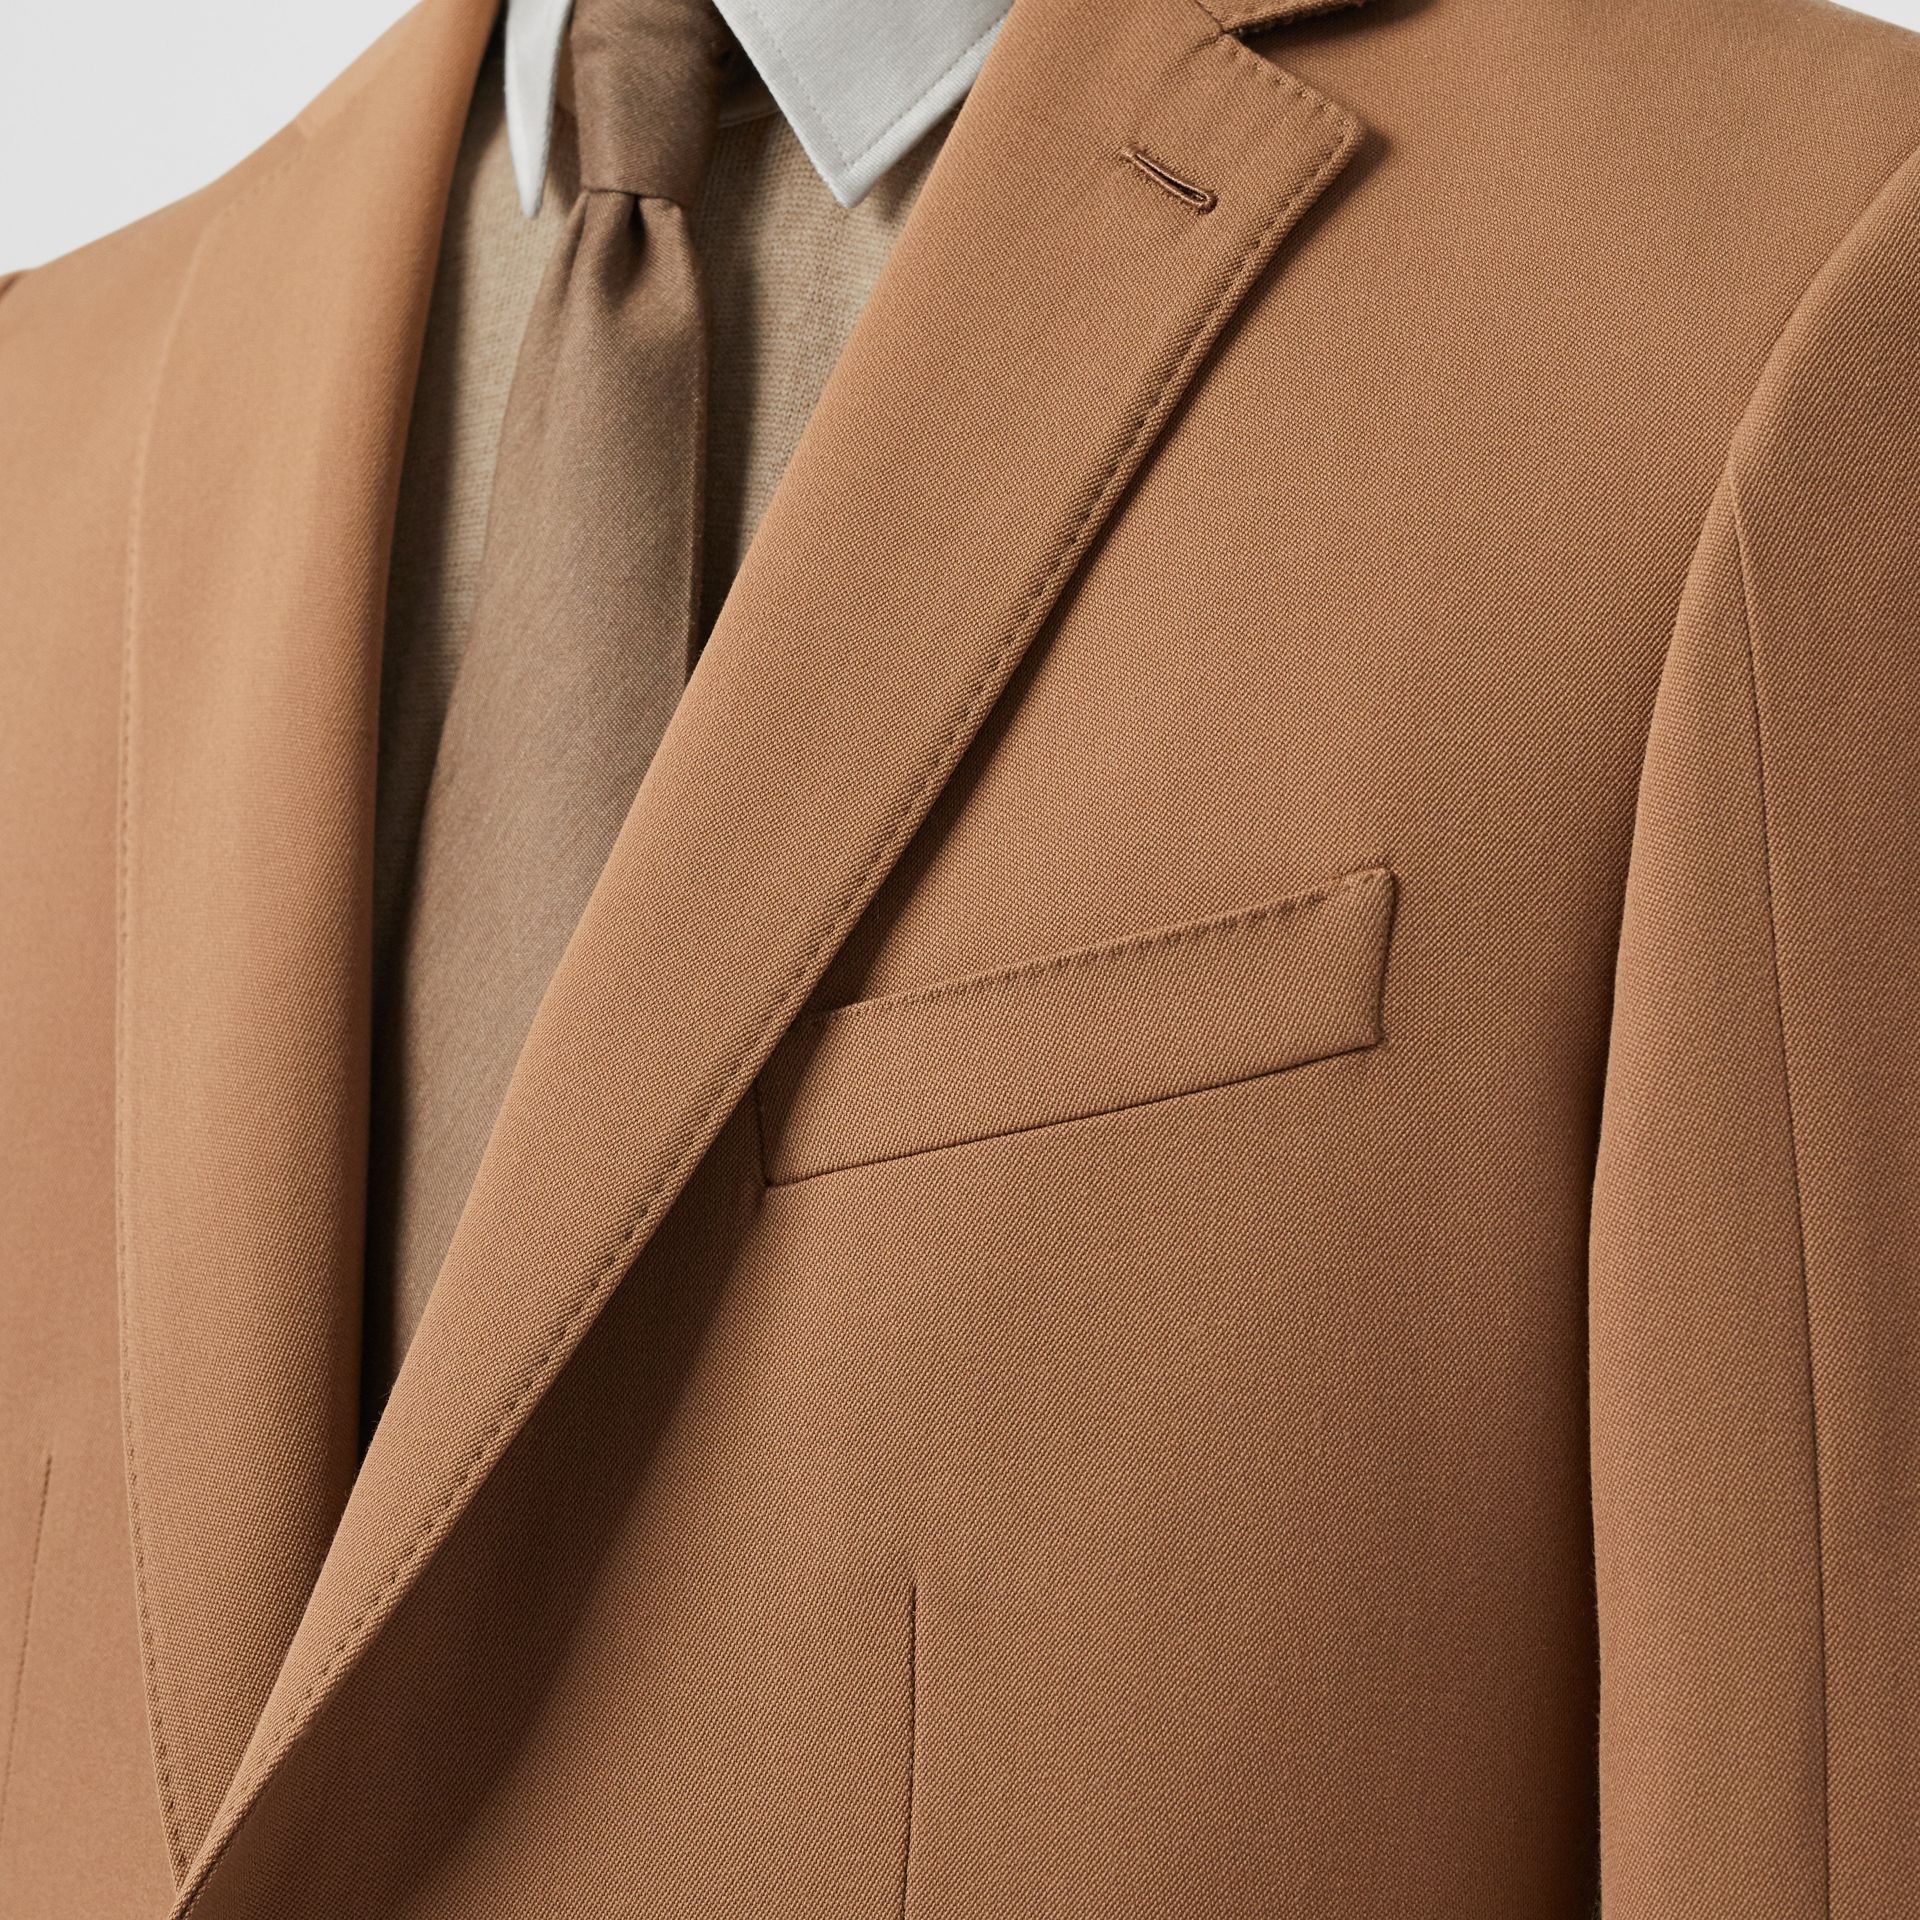 Camel Hair Coat with Detachable Wool Jacket in Warm - Men | Burberry - gallery image 1